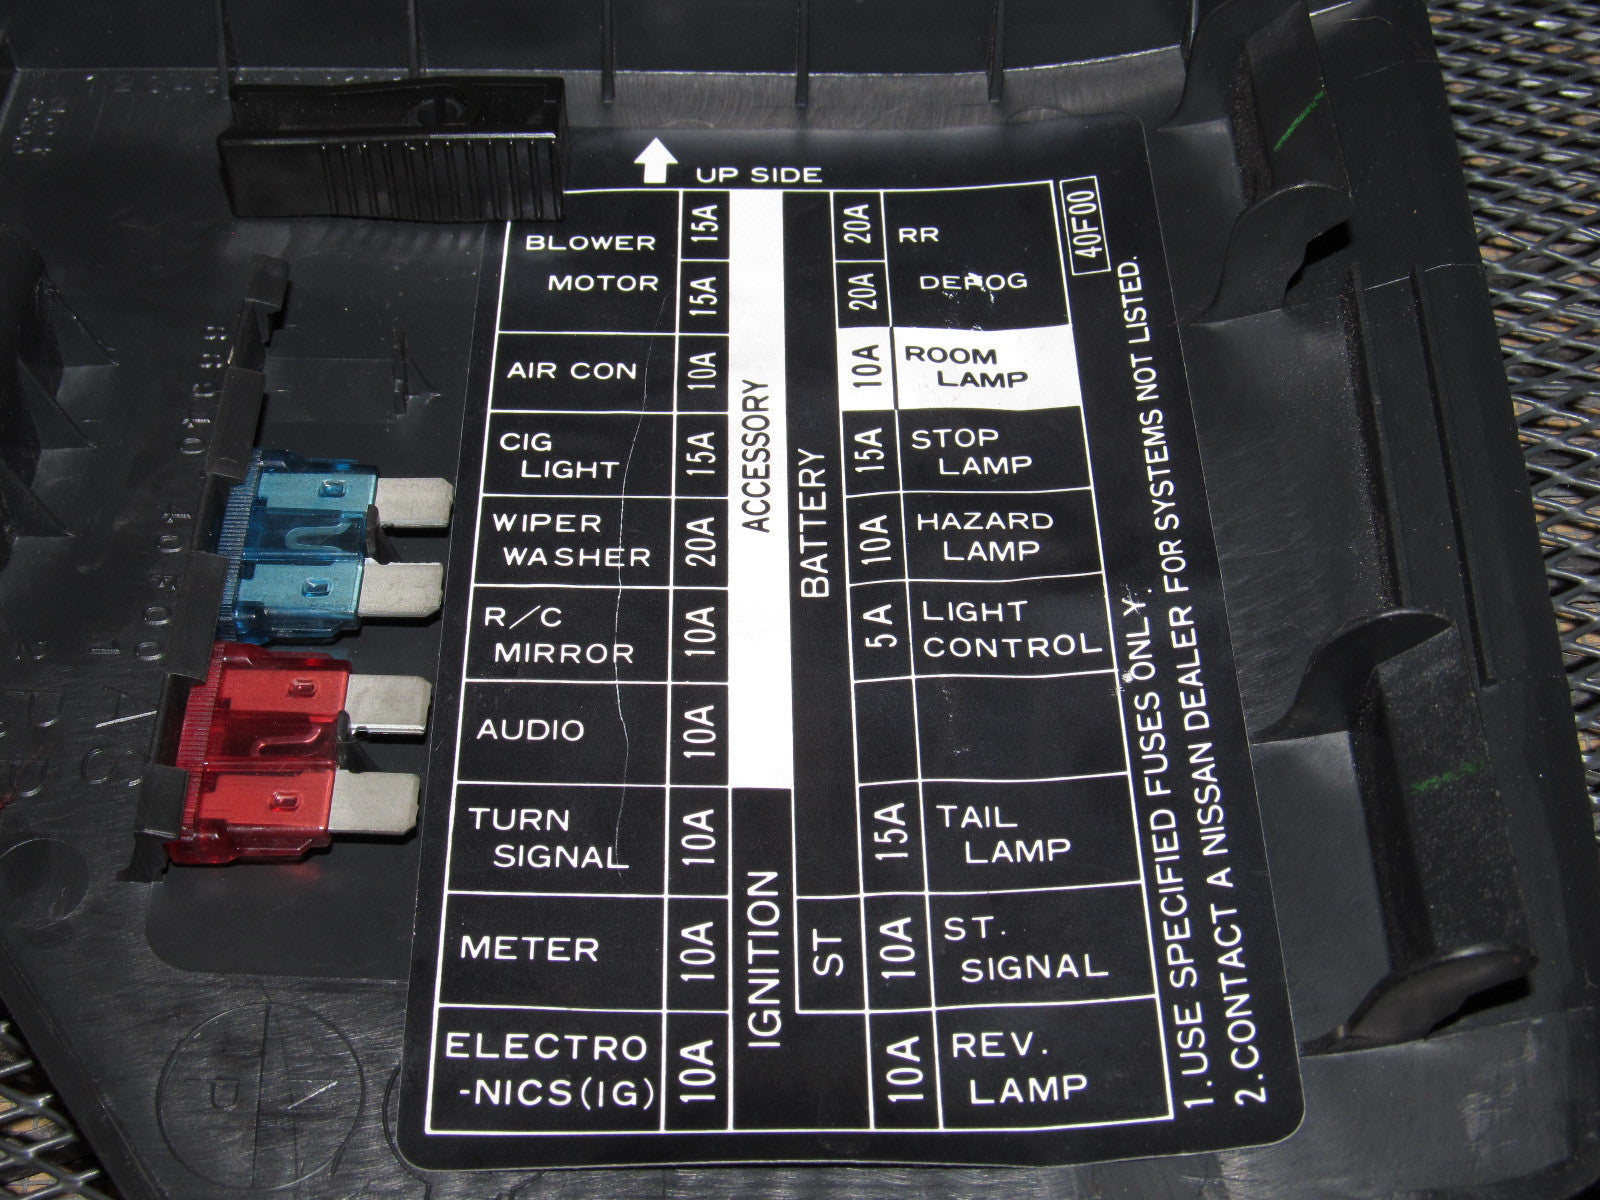 91 240sx fuse box wiring diagram 1990 nissan 240sx fuse box wiring diagrams blog  1990 nissan 240sx fuse box wiring